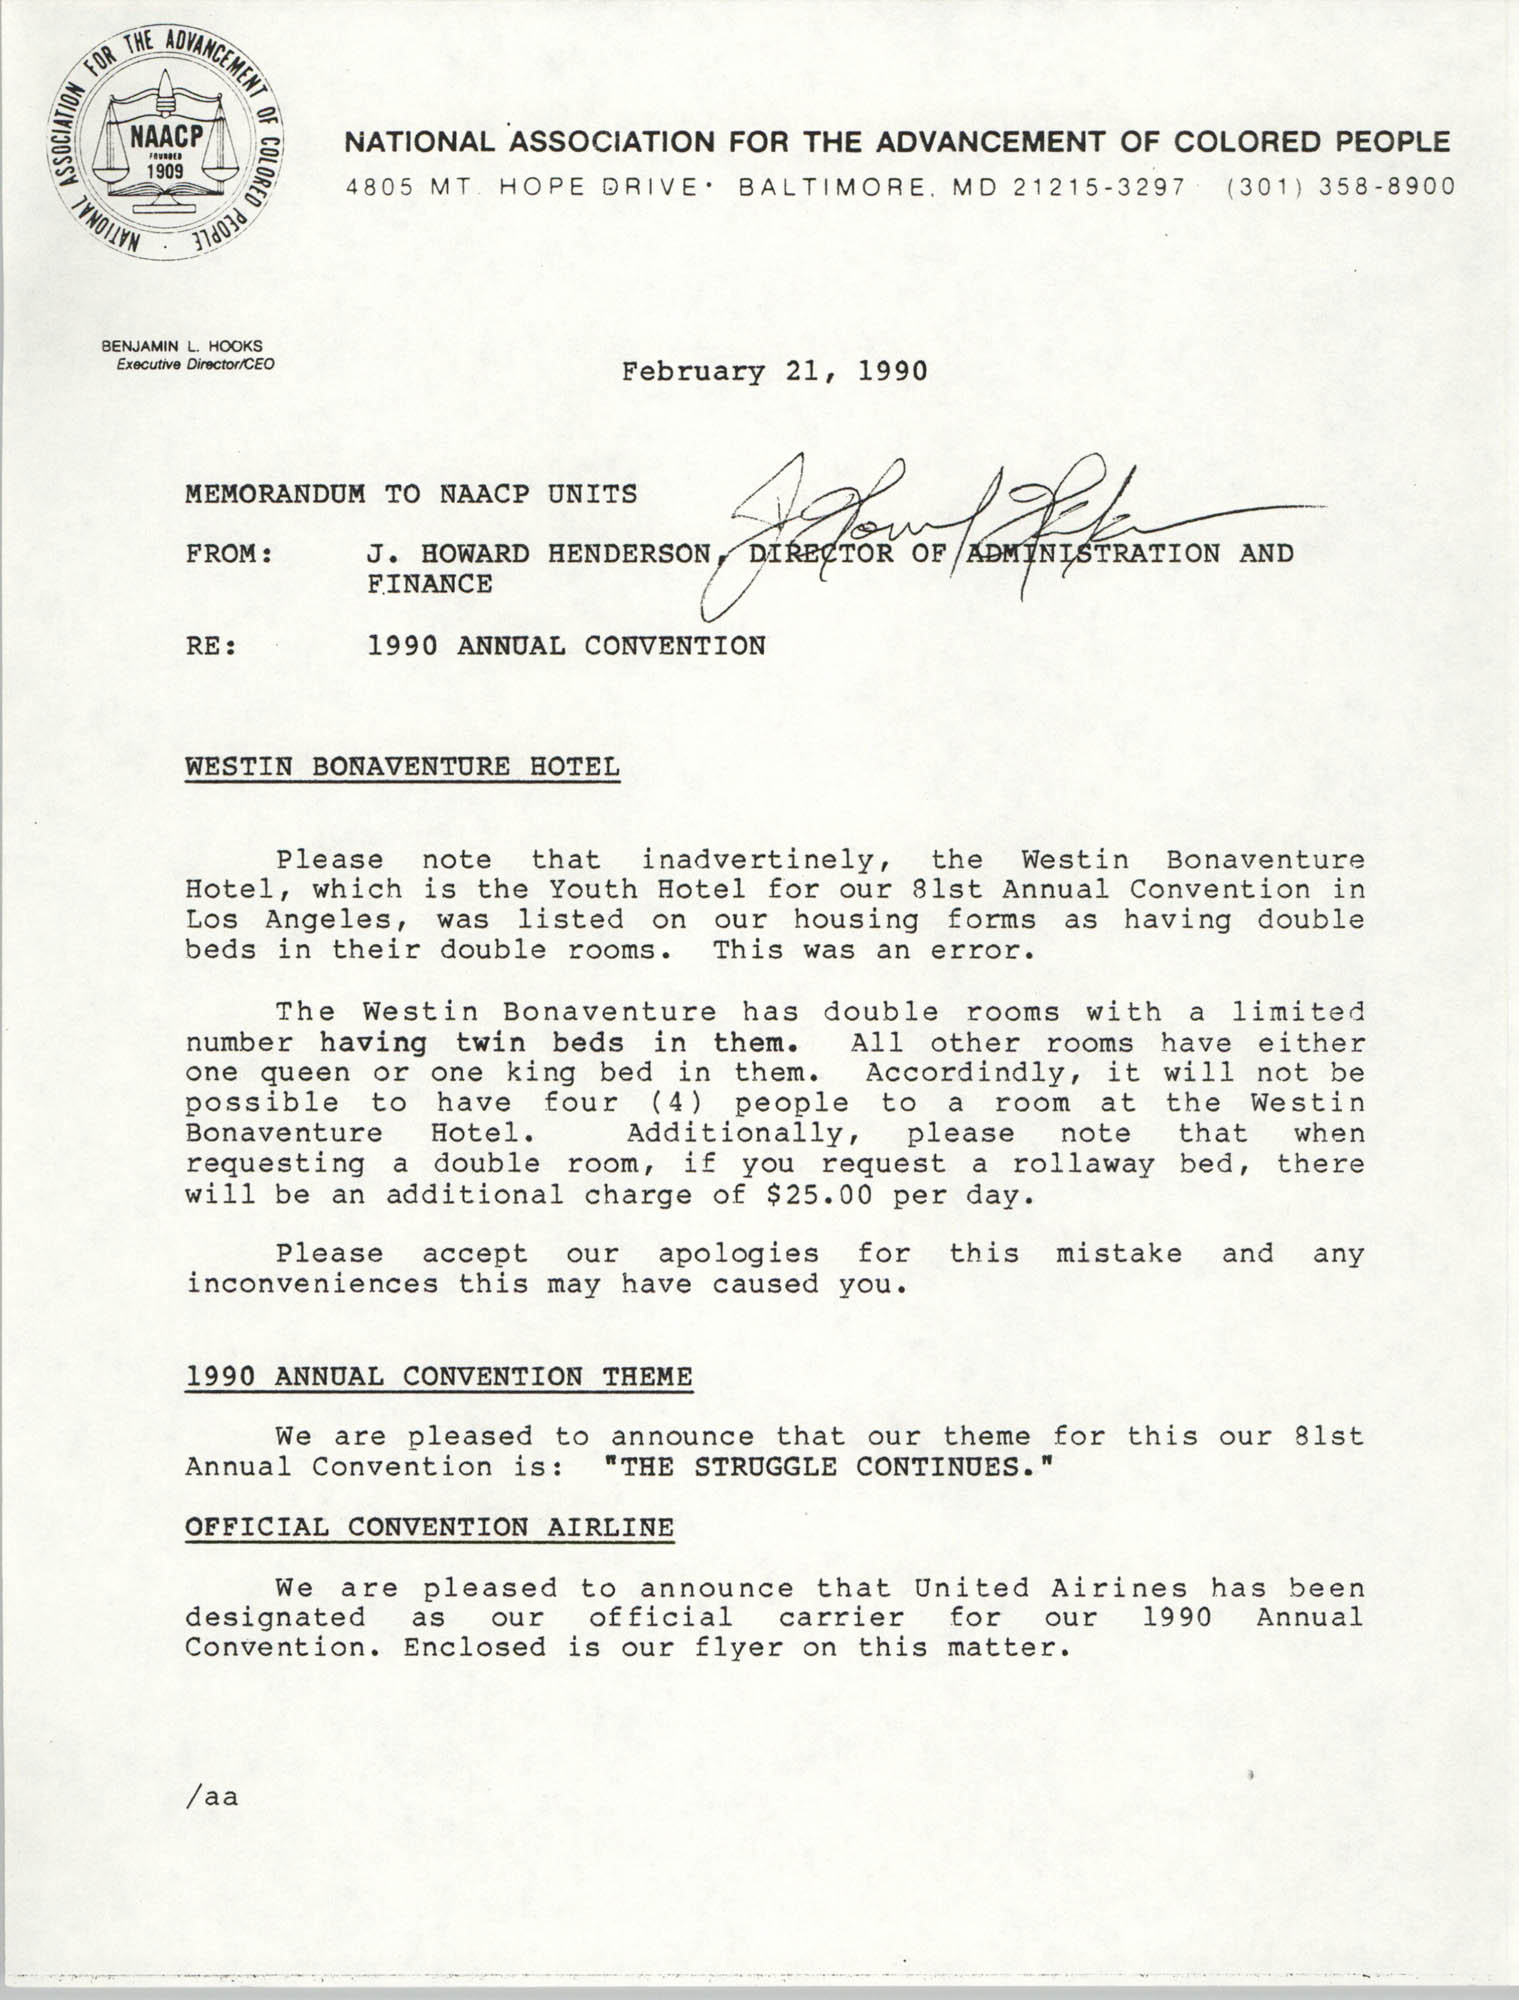 NAACP Memorandum, February 21, 1990